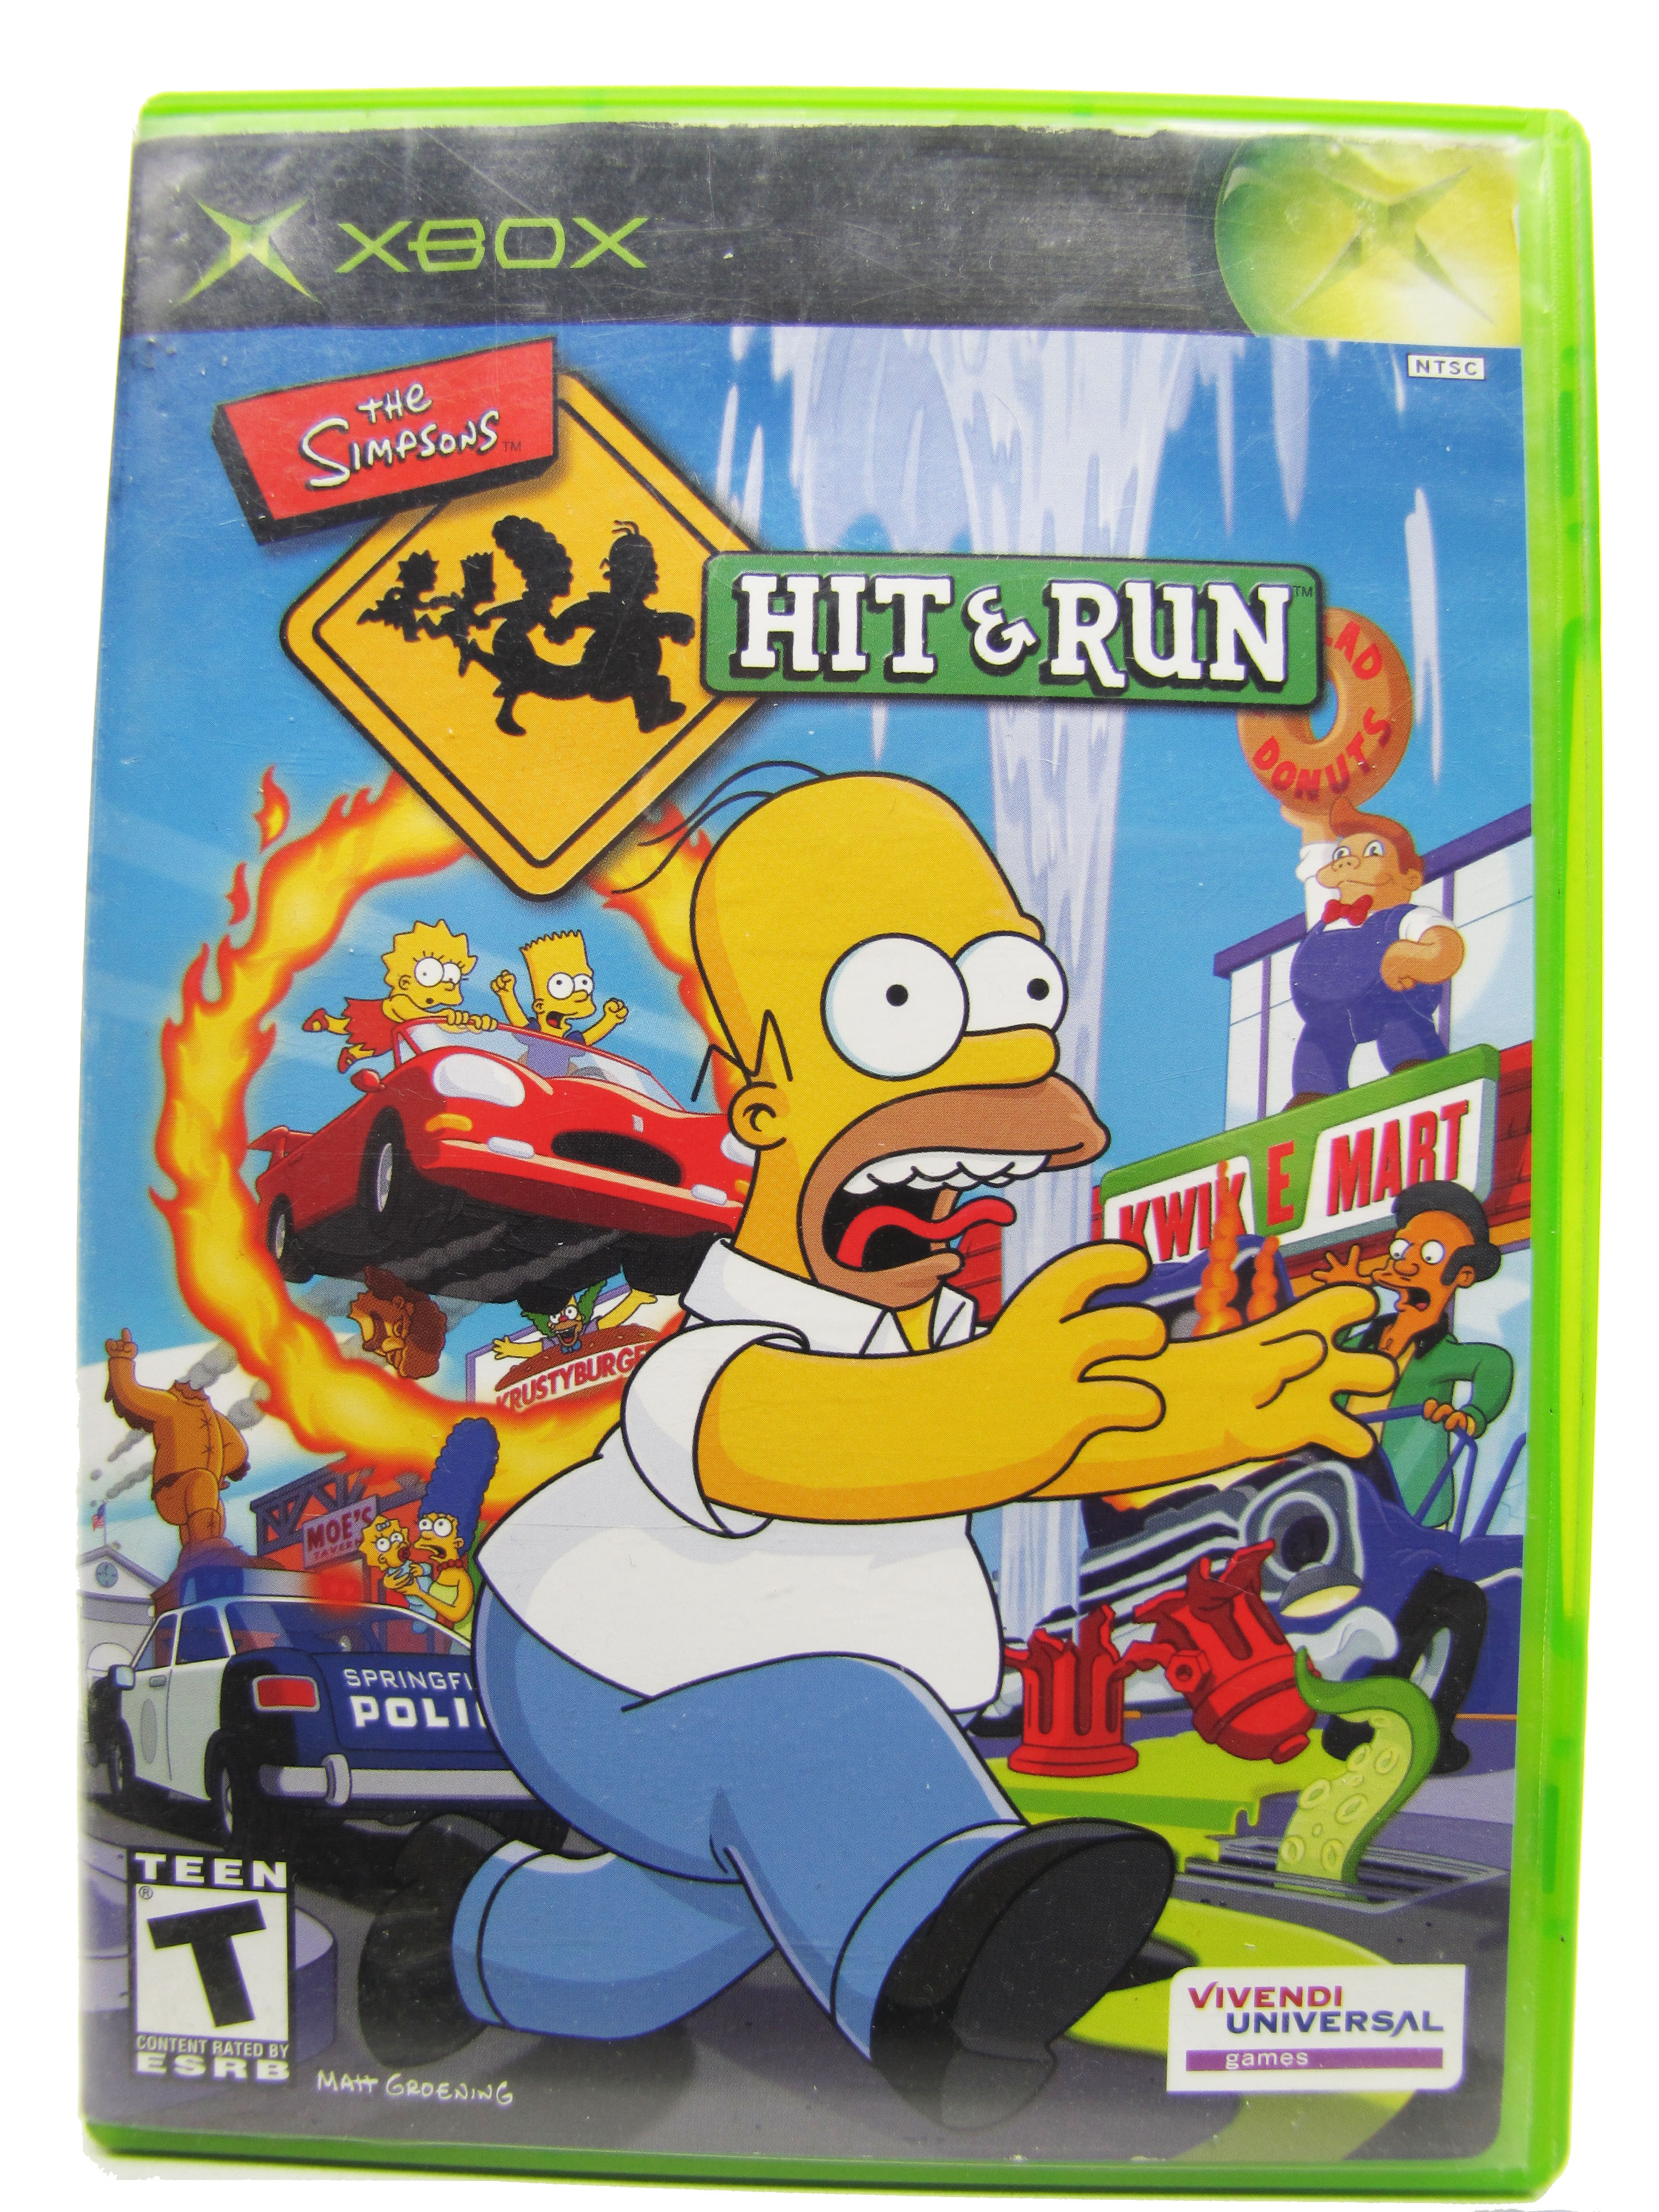 XBOX The Simpsons: Hit & Run Complete - 2003